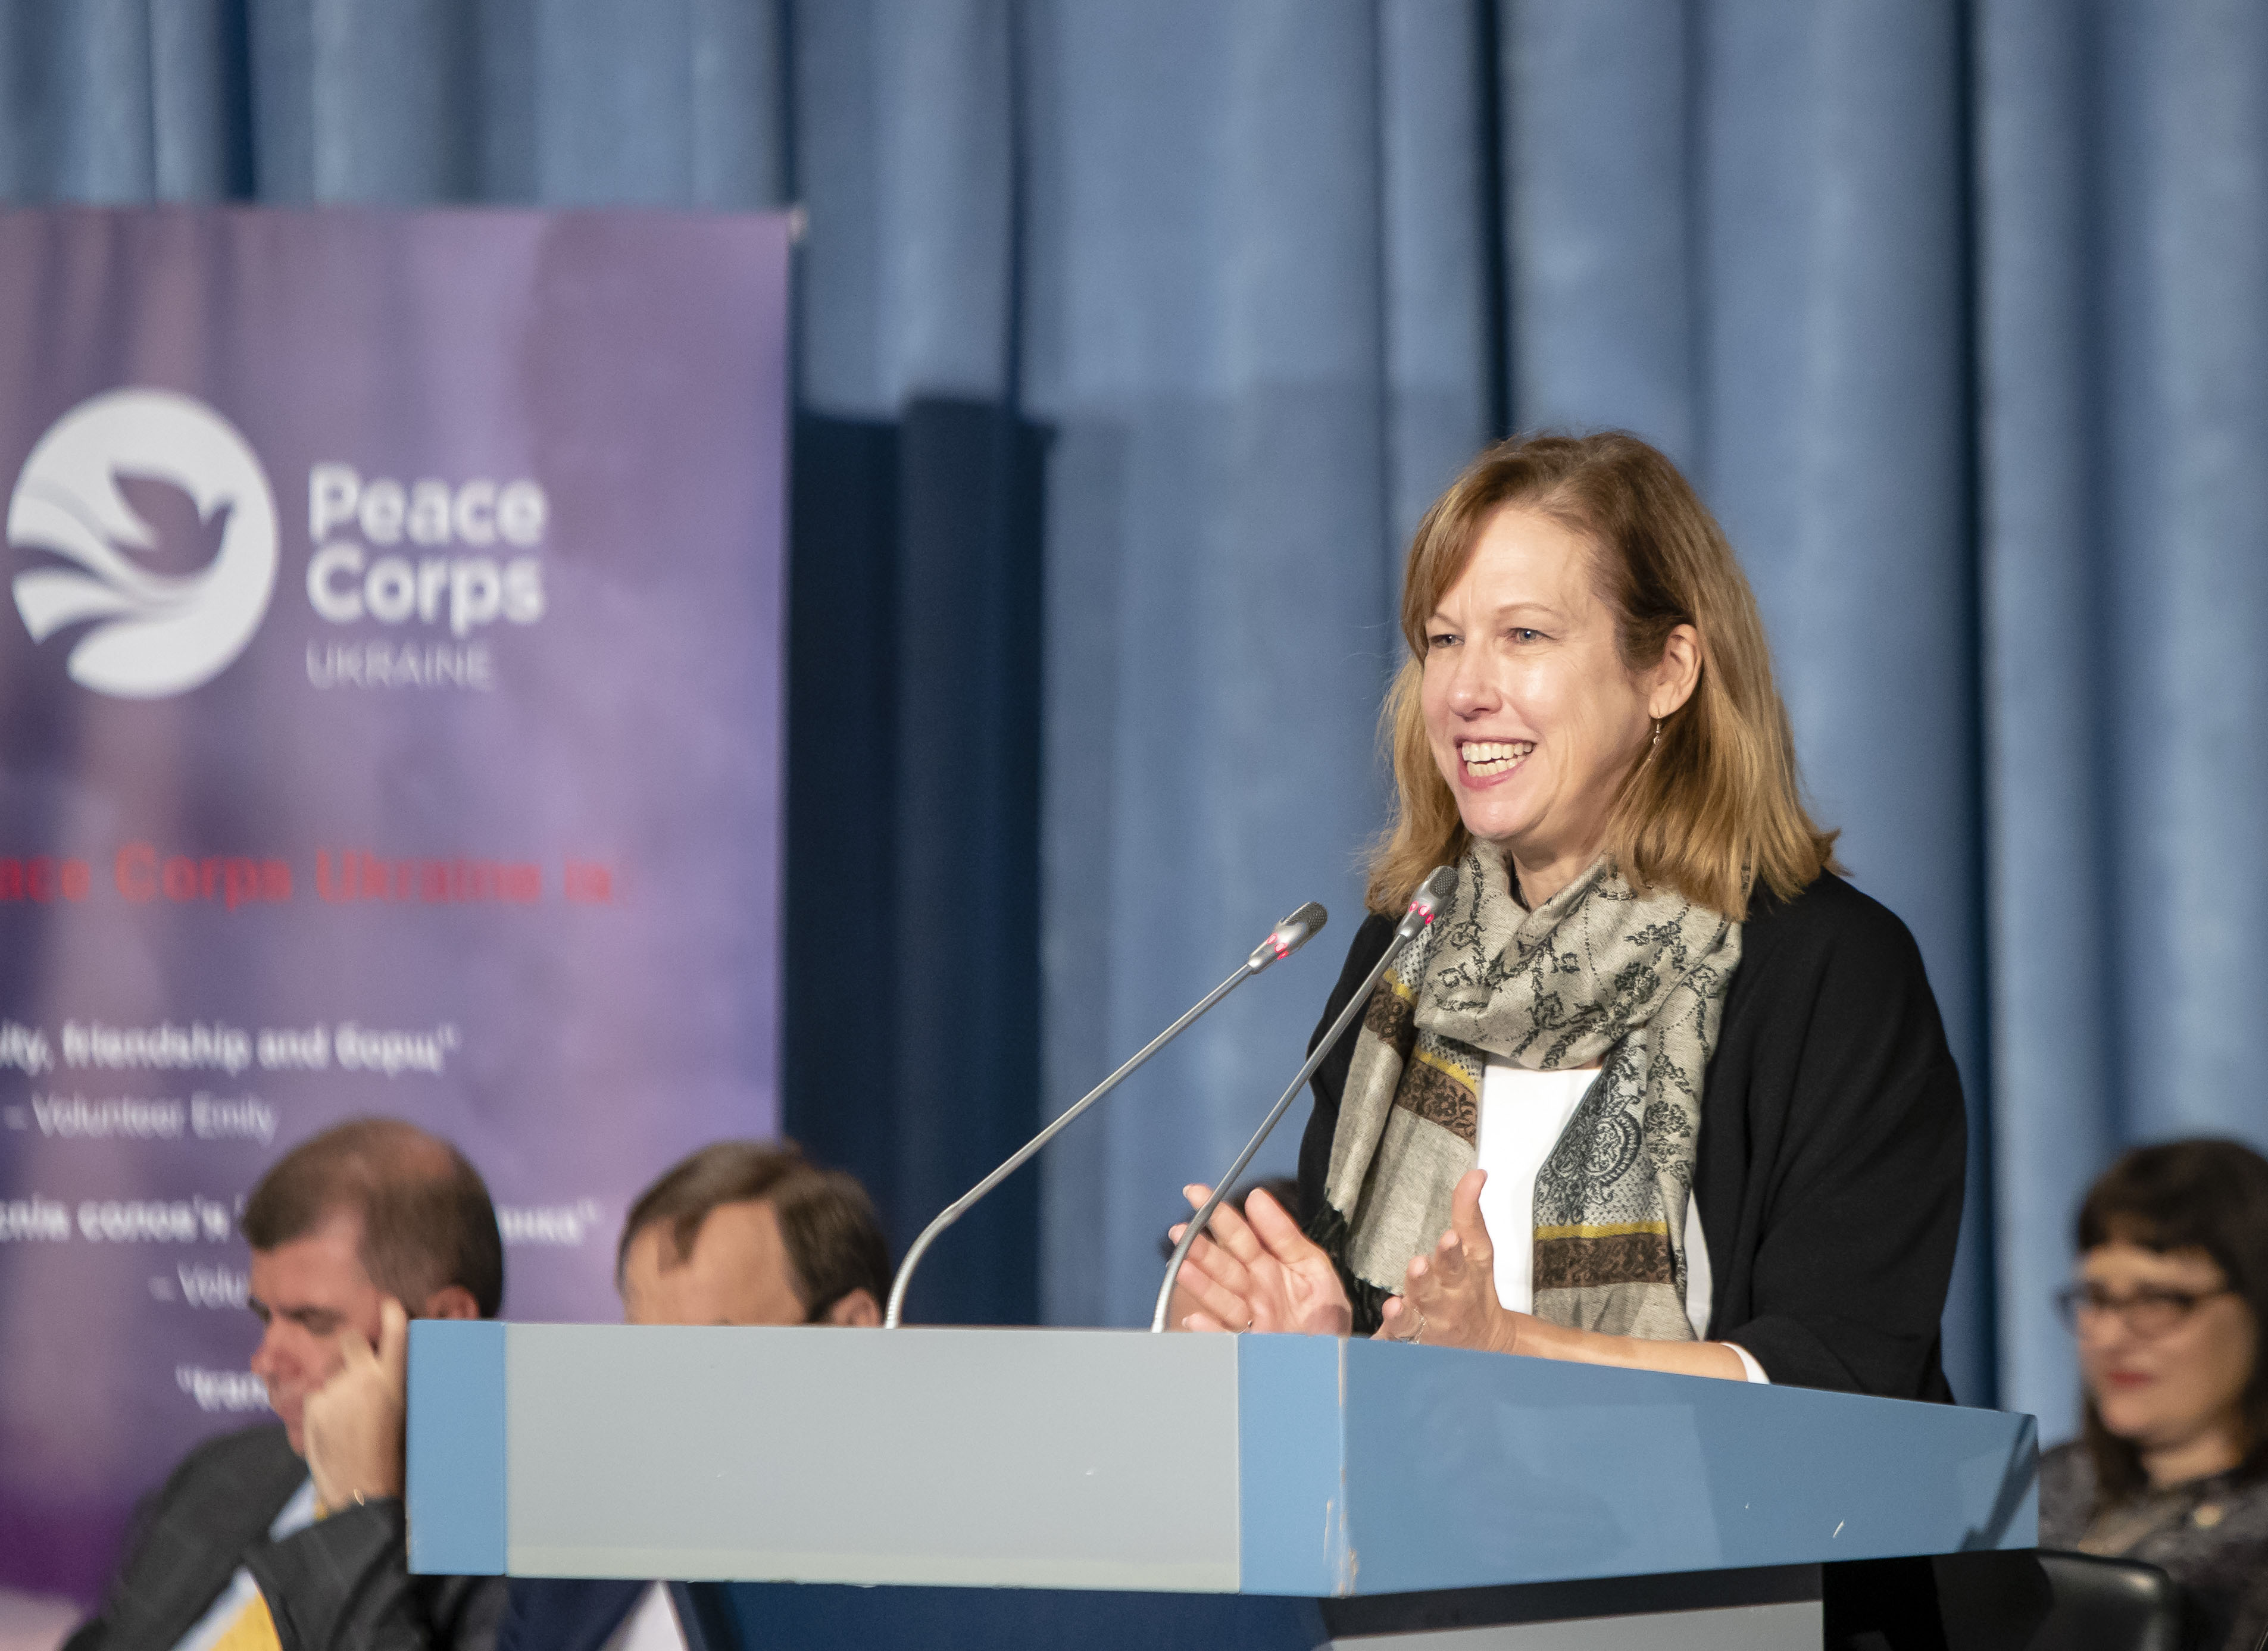 Remarks by Deputy Chief of Mission Kristina Kvien at a Swearing-In Ceremony  for Peace Corps Volunteers | U.S. Embassy in Ukraine